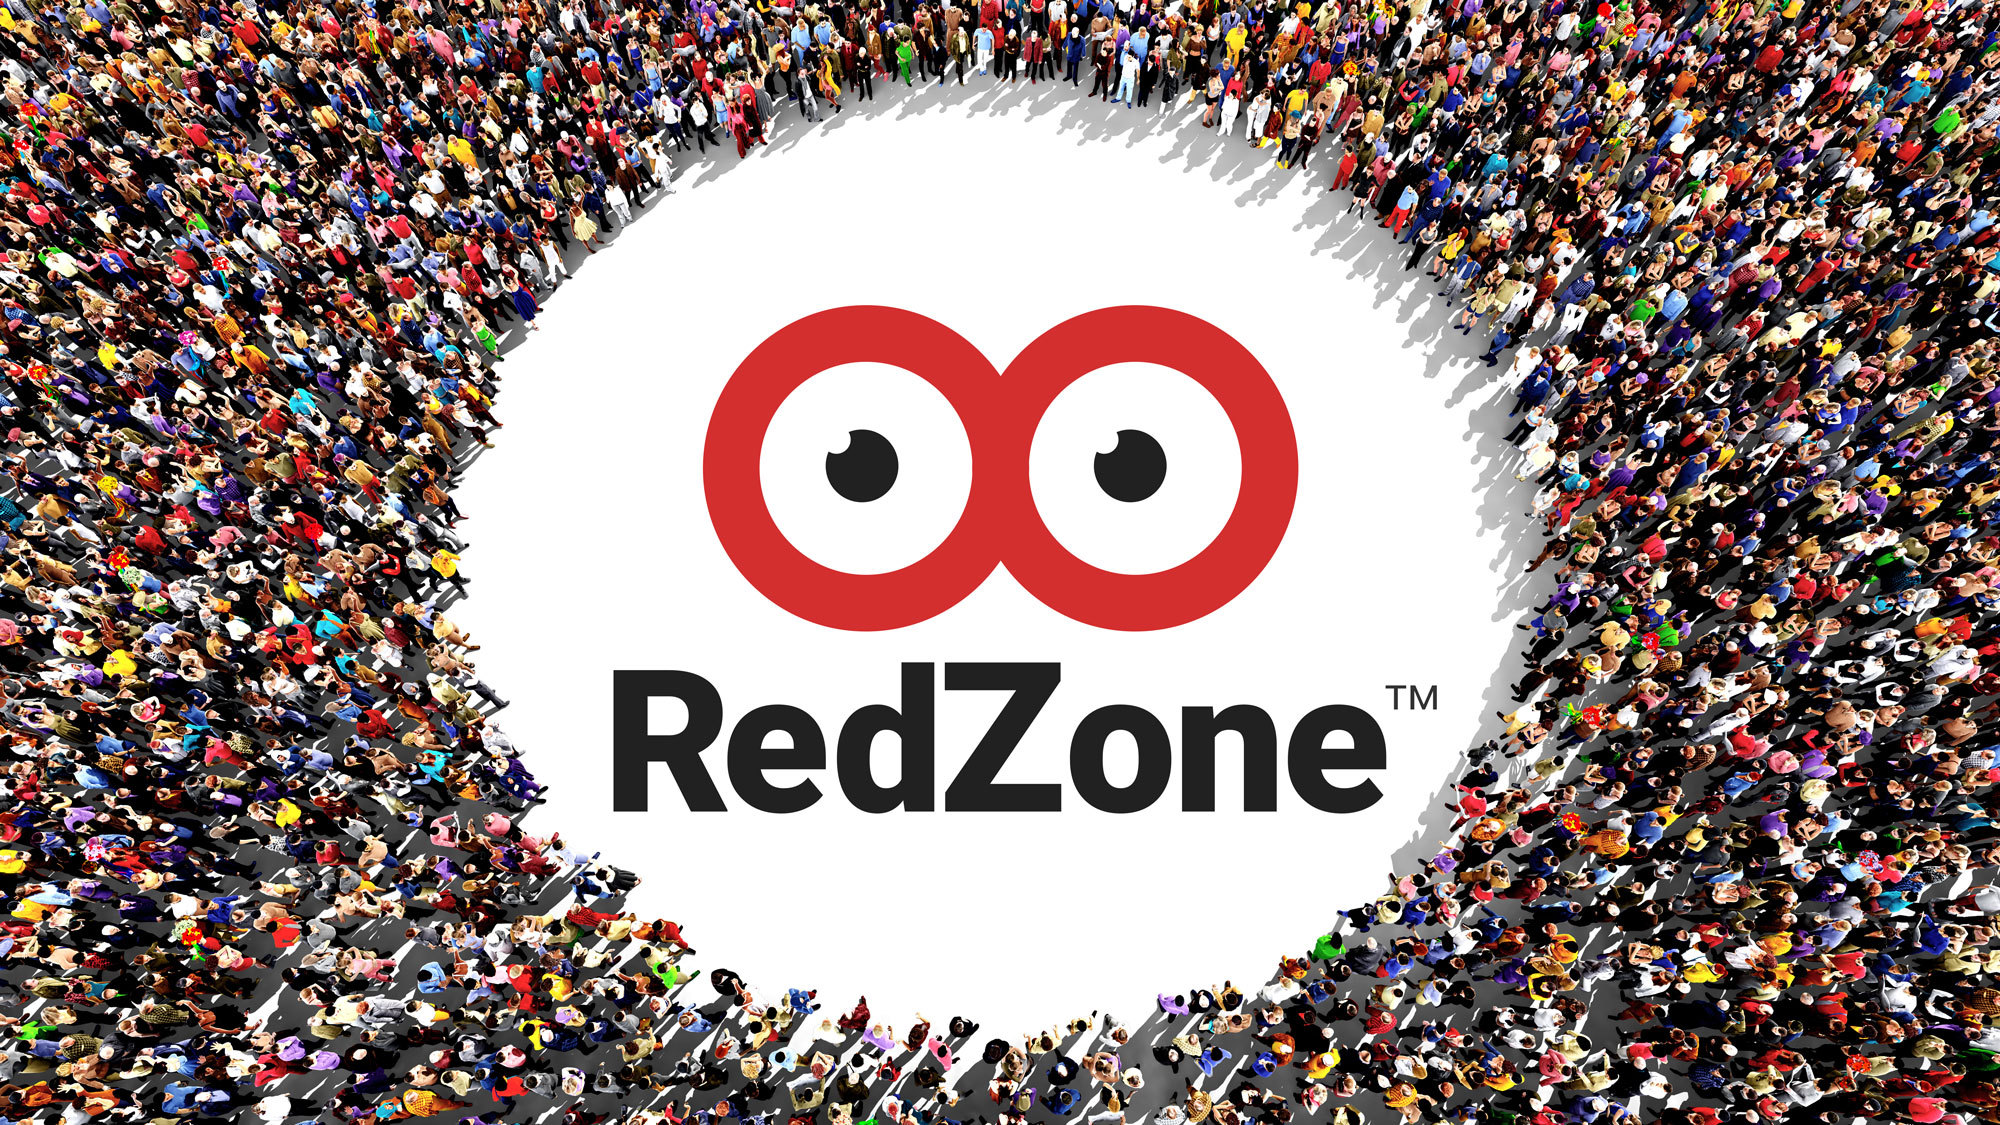 Red Zone Map RedZone Map™ Shows Continued Ground Breaking Cost Per Install (CPI